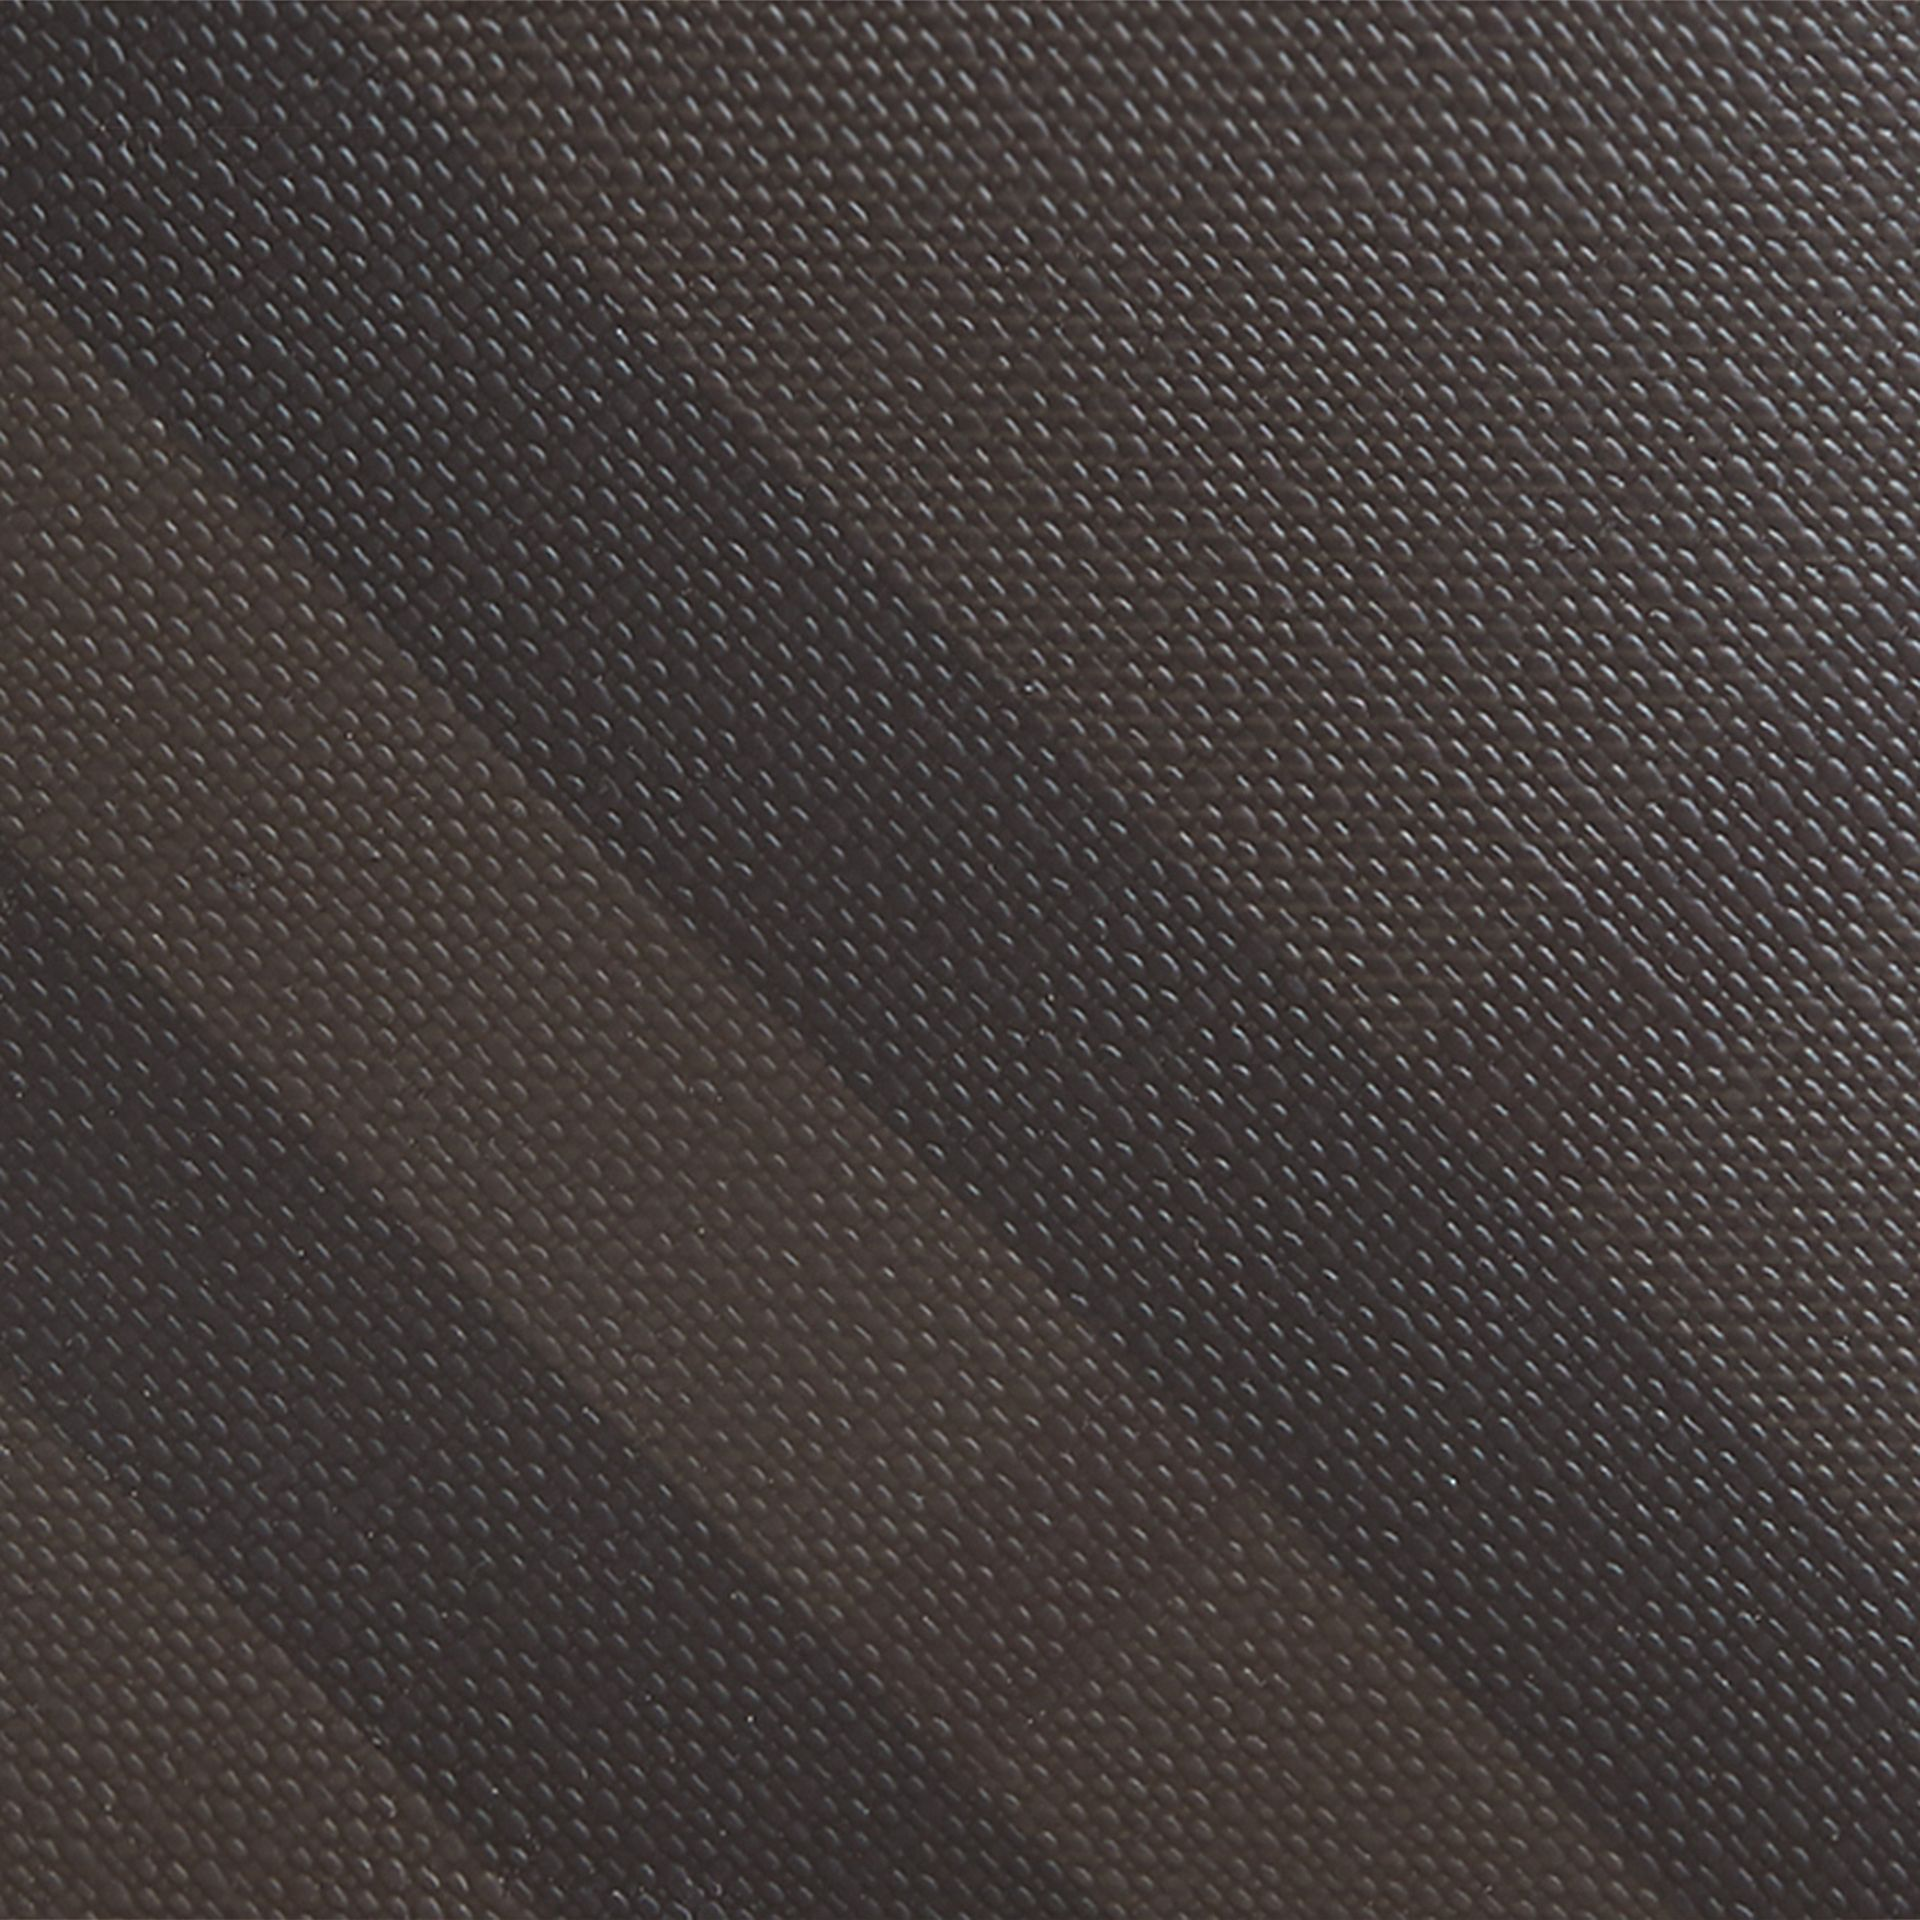 London Check International Bifold Coin Wallet in Chocolate/black - Men | Burberry Canada - gallery image 1